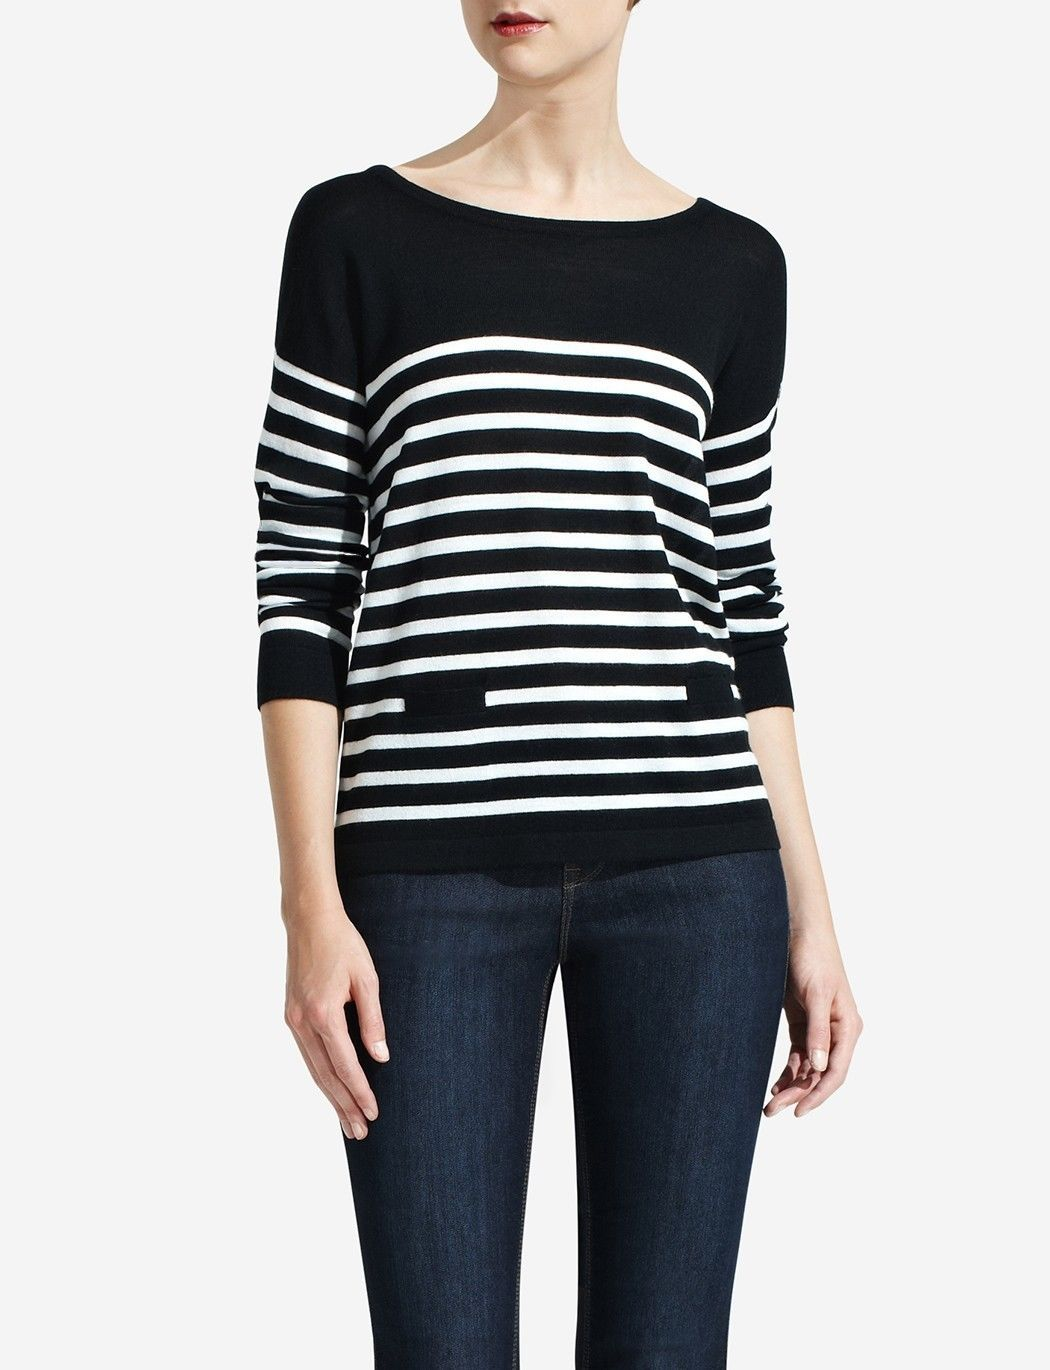 Primary image for The Limited Striped Merino Crewneck Sweater, size M, NWT